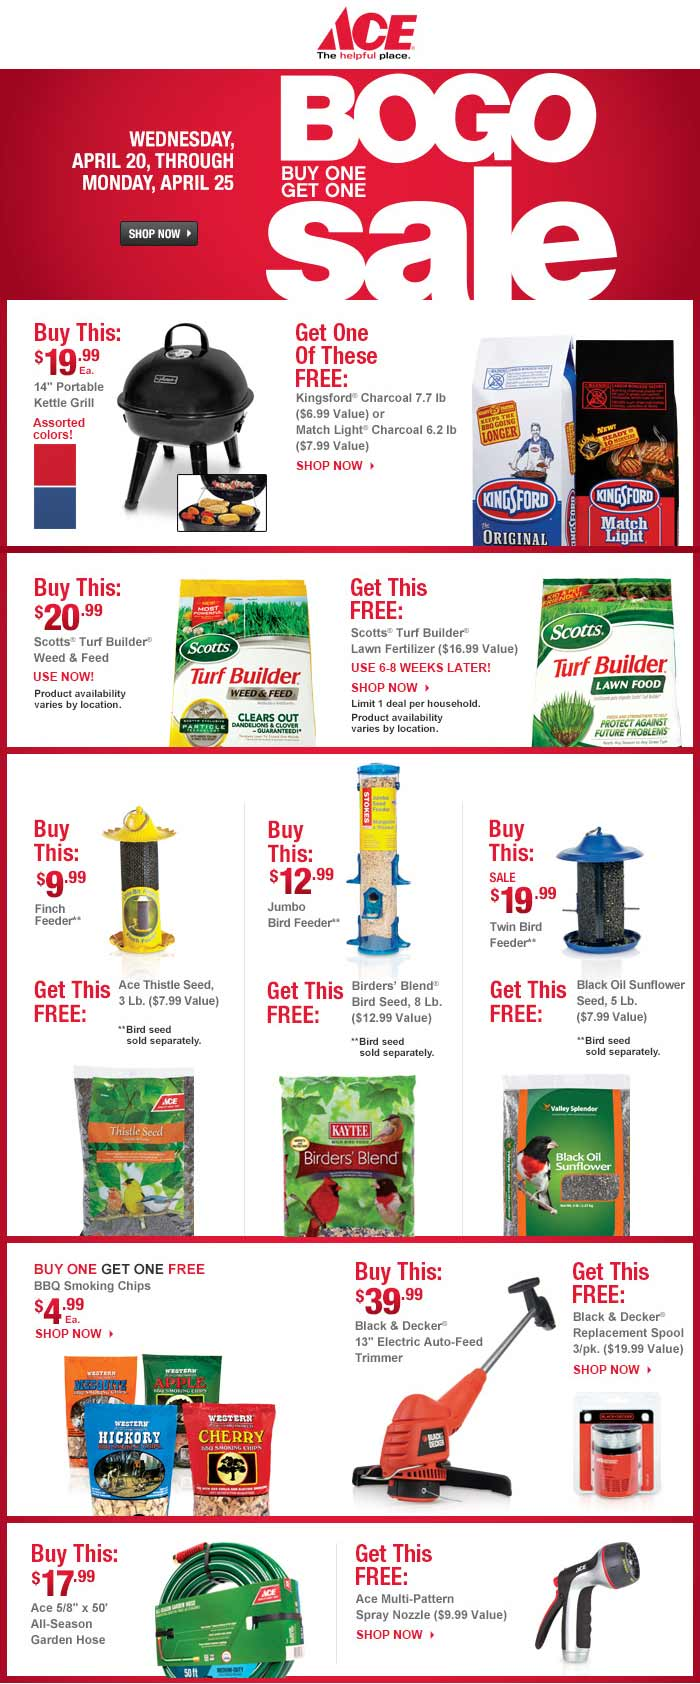 AceHardware.com Promo Coupon Spring bogo sale going on in-store & online at Ace Hardware